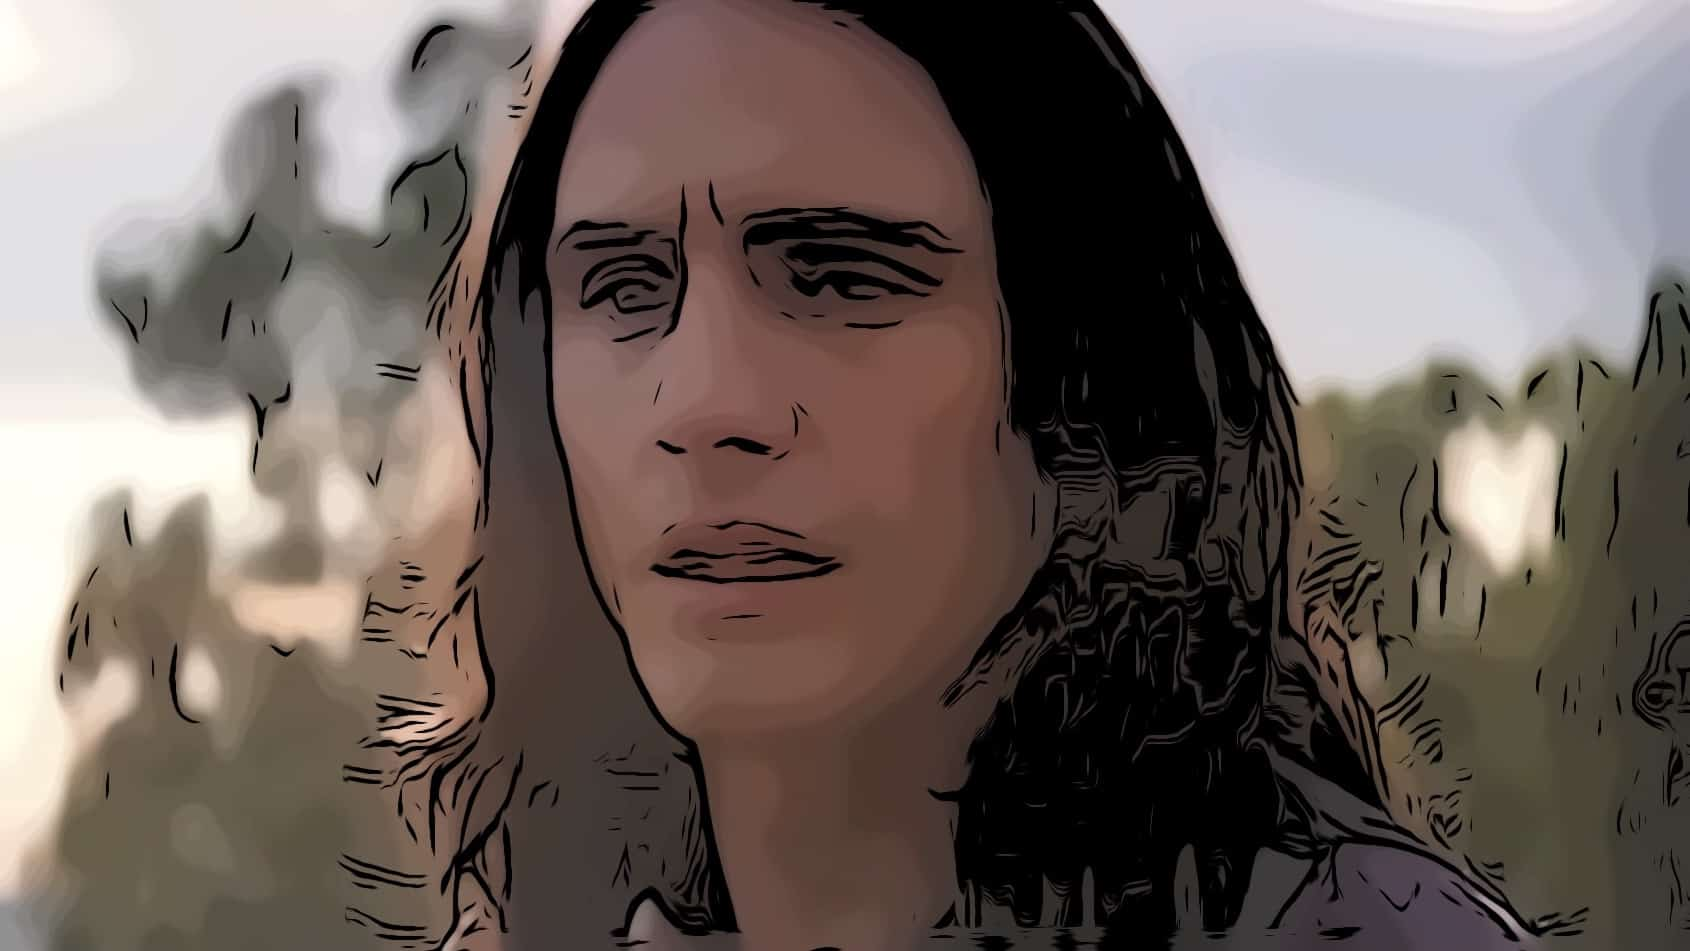 Scene from The Disaster Artist for James Franco movies post.